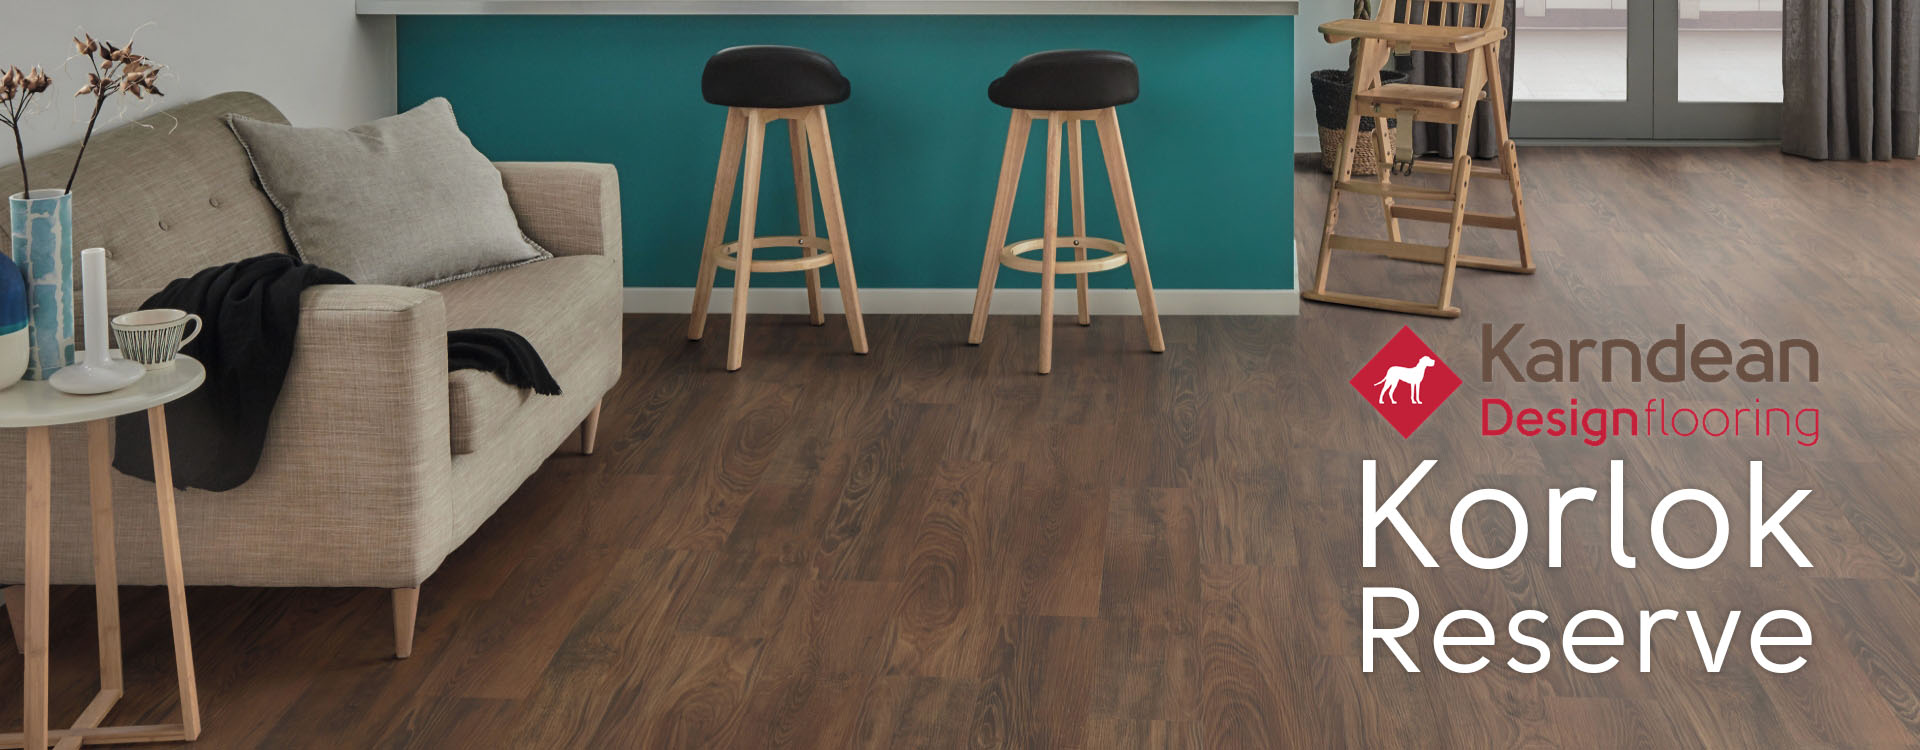 New Rigid Core flooring from Karndean Flooring; Korlok Reserve. Everything clicks with Korlok.